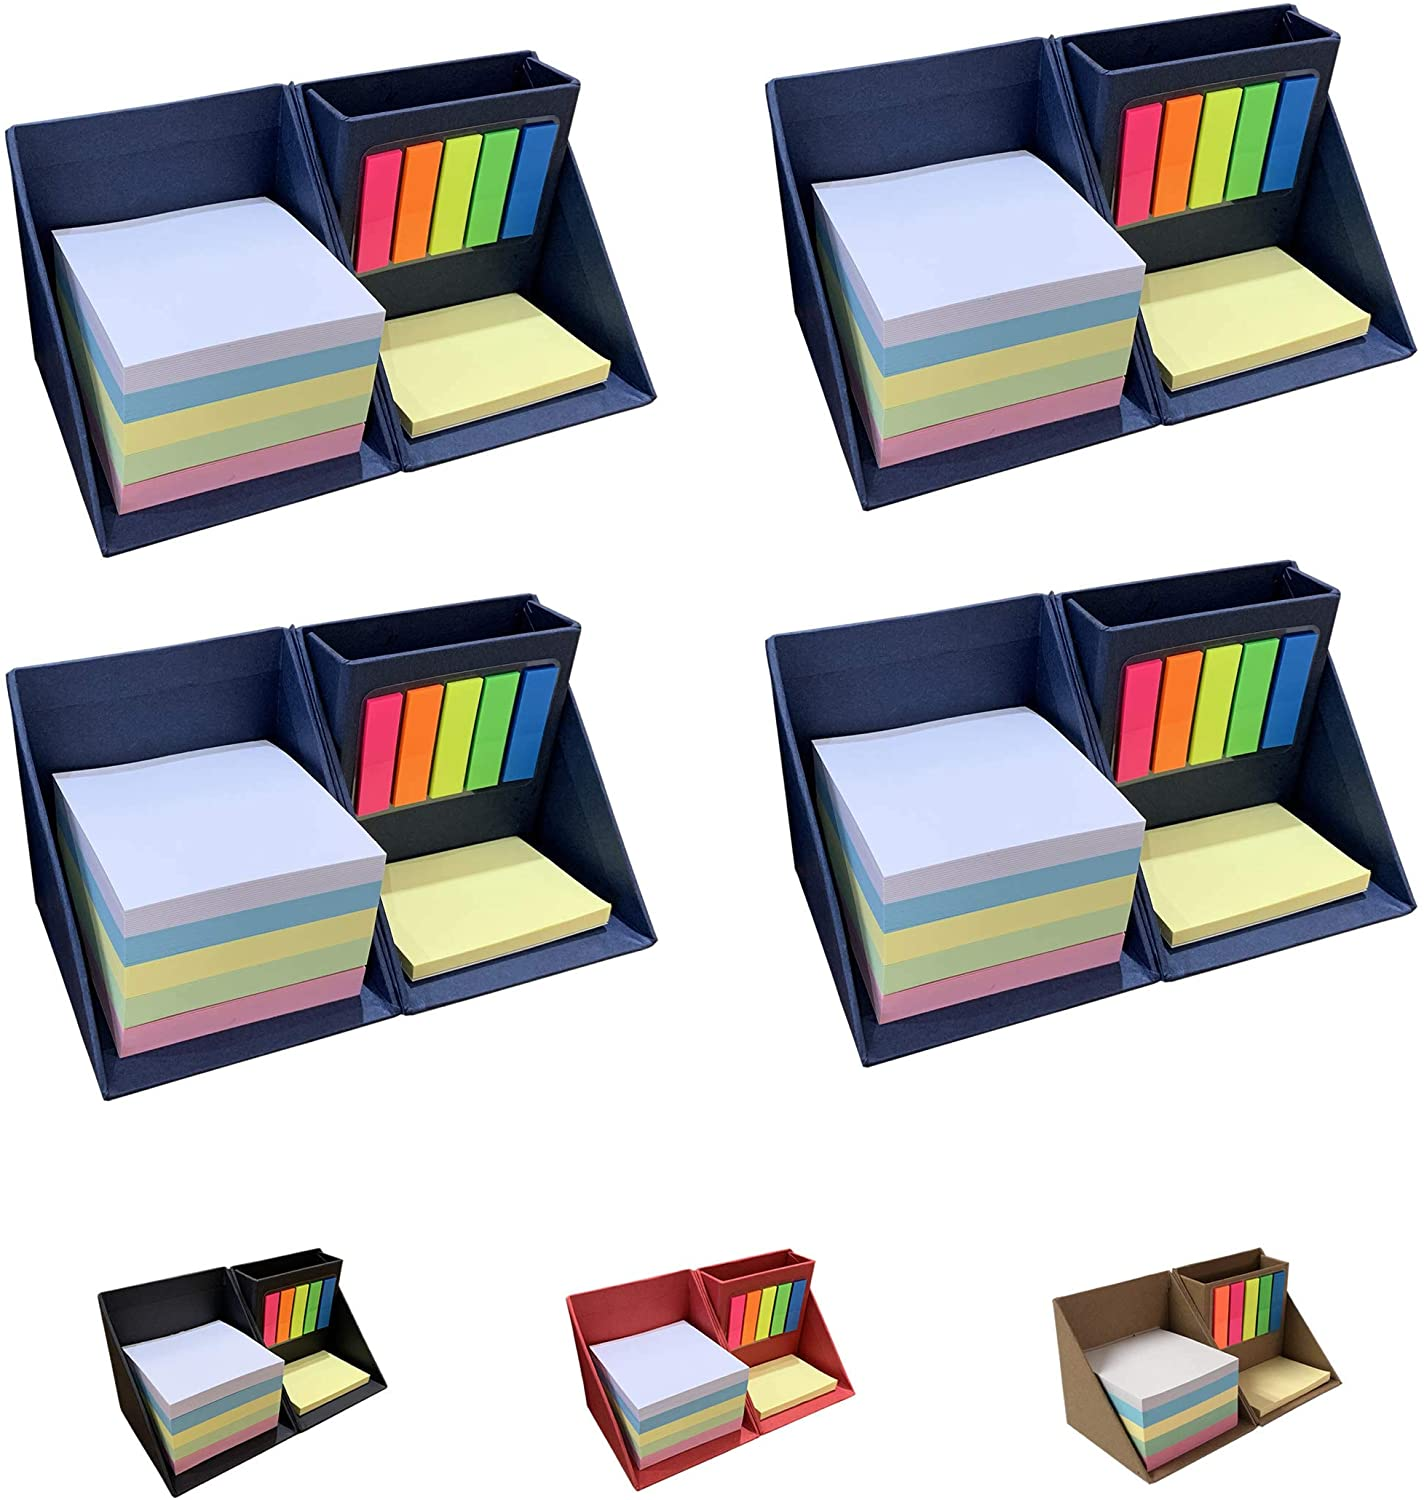 Better One 4U - Sticky Notes Holder with Pen Holder, Desk Organizer, Desktop Storage Box with Colorful Sticky Notes and Index Tabs, Organize Your Desktop Easily (4 Pack, Blue)